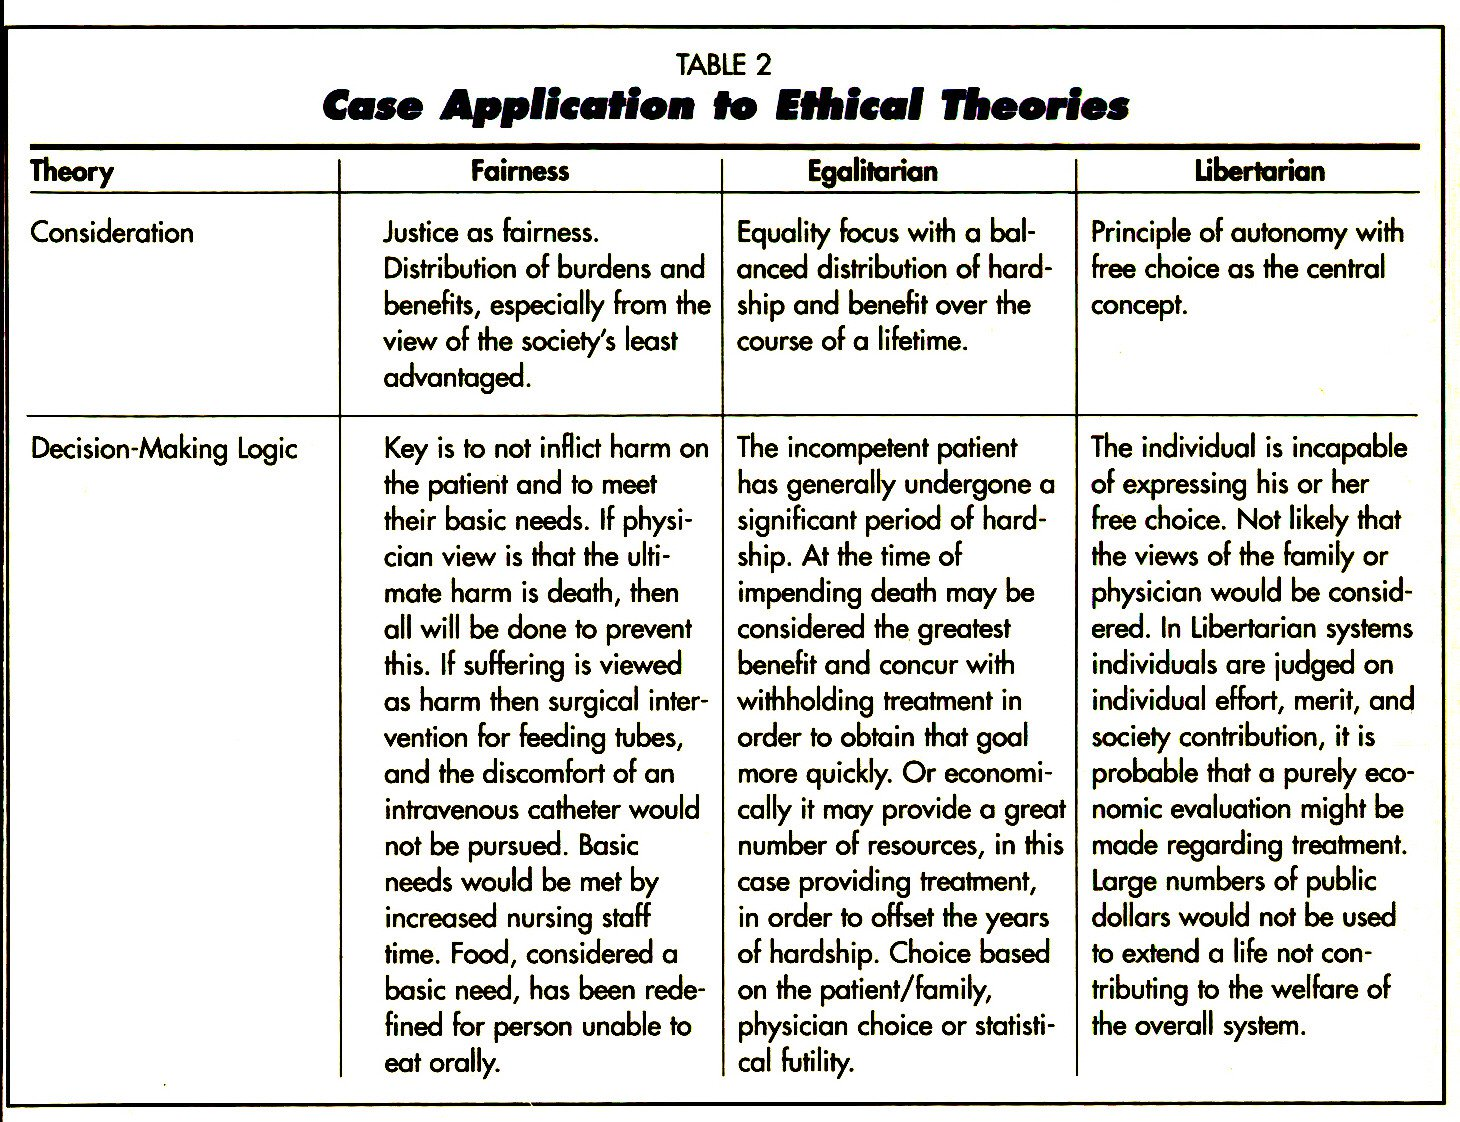 TABLE 2Case Application fo Ethical Theories